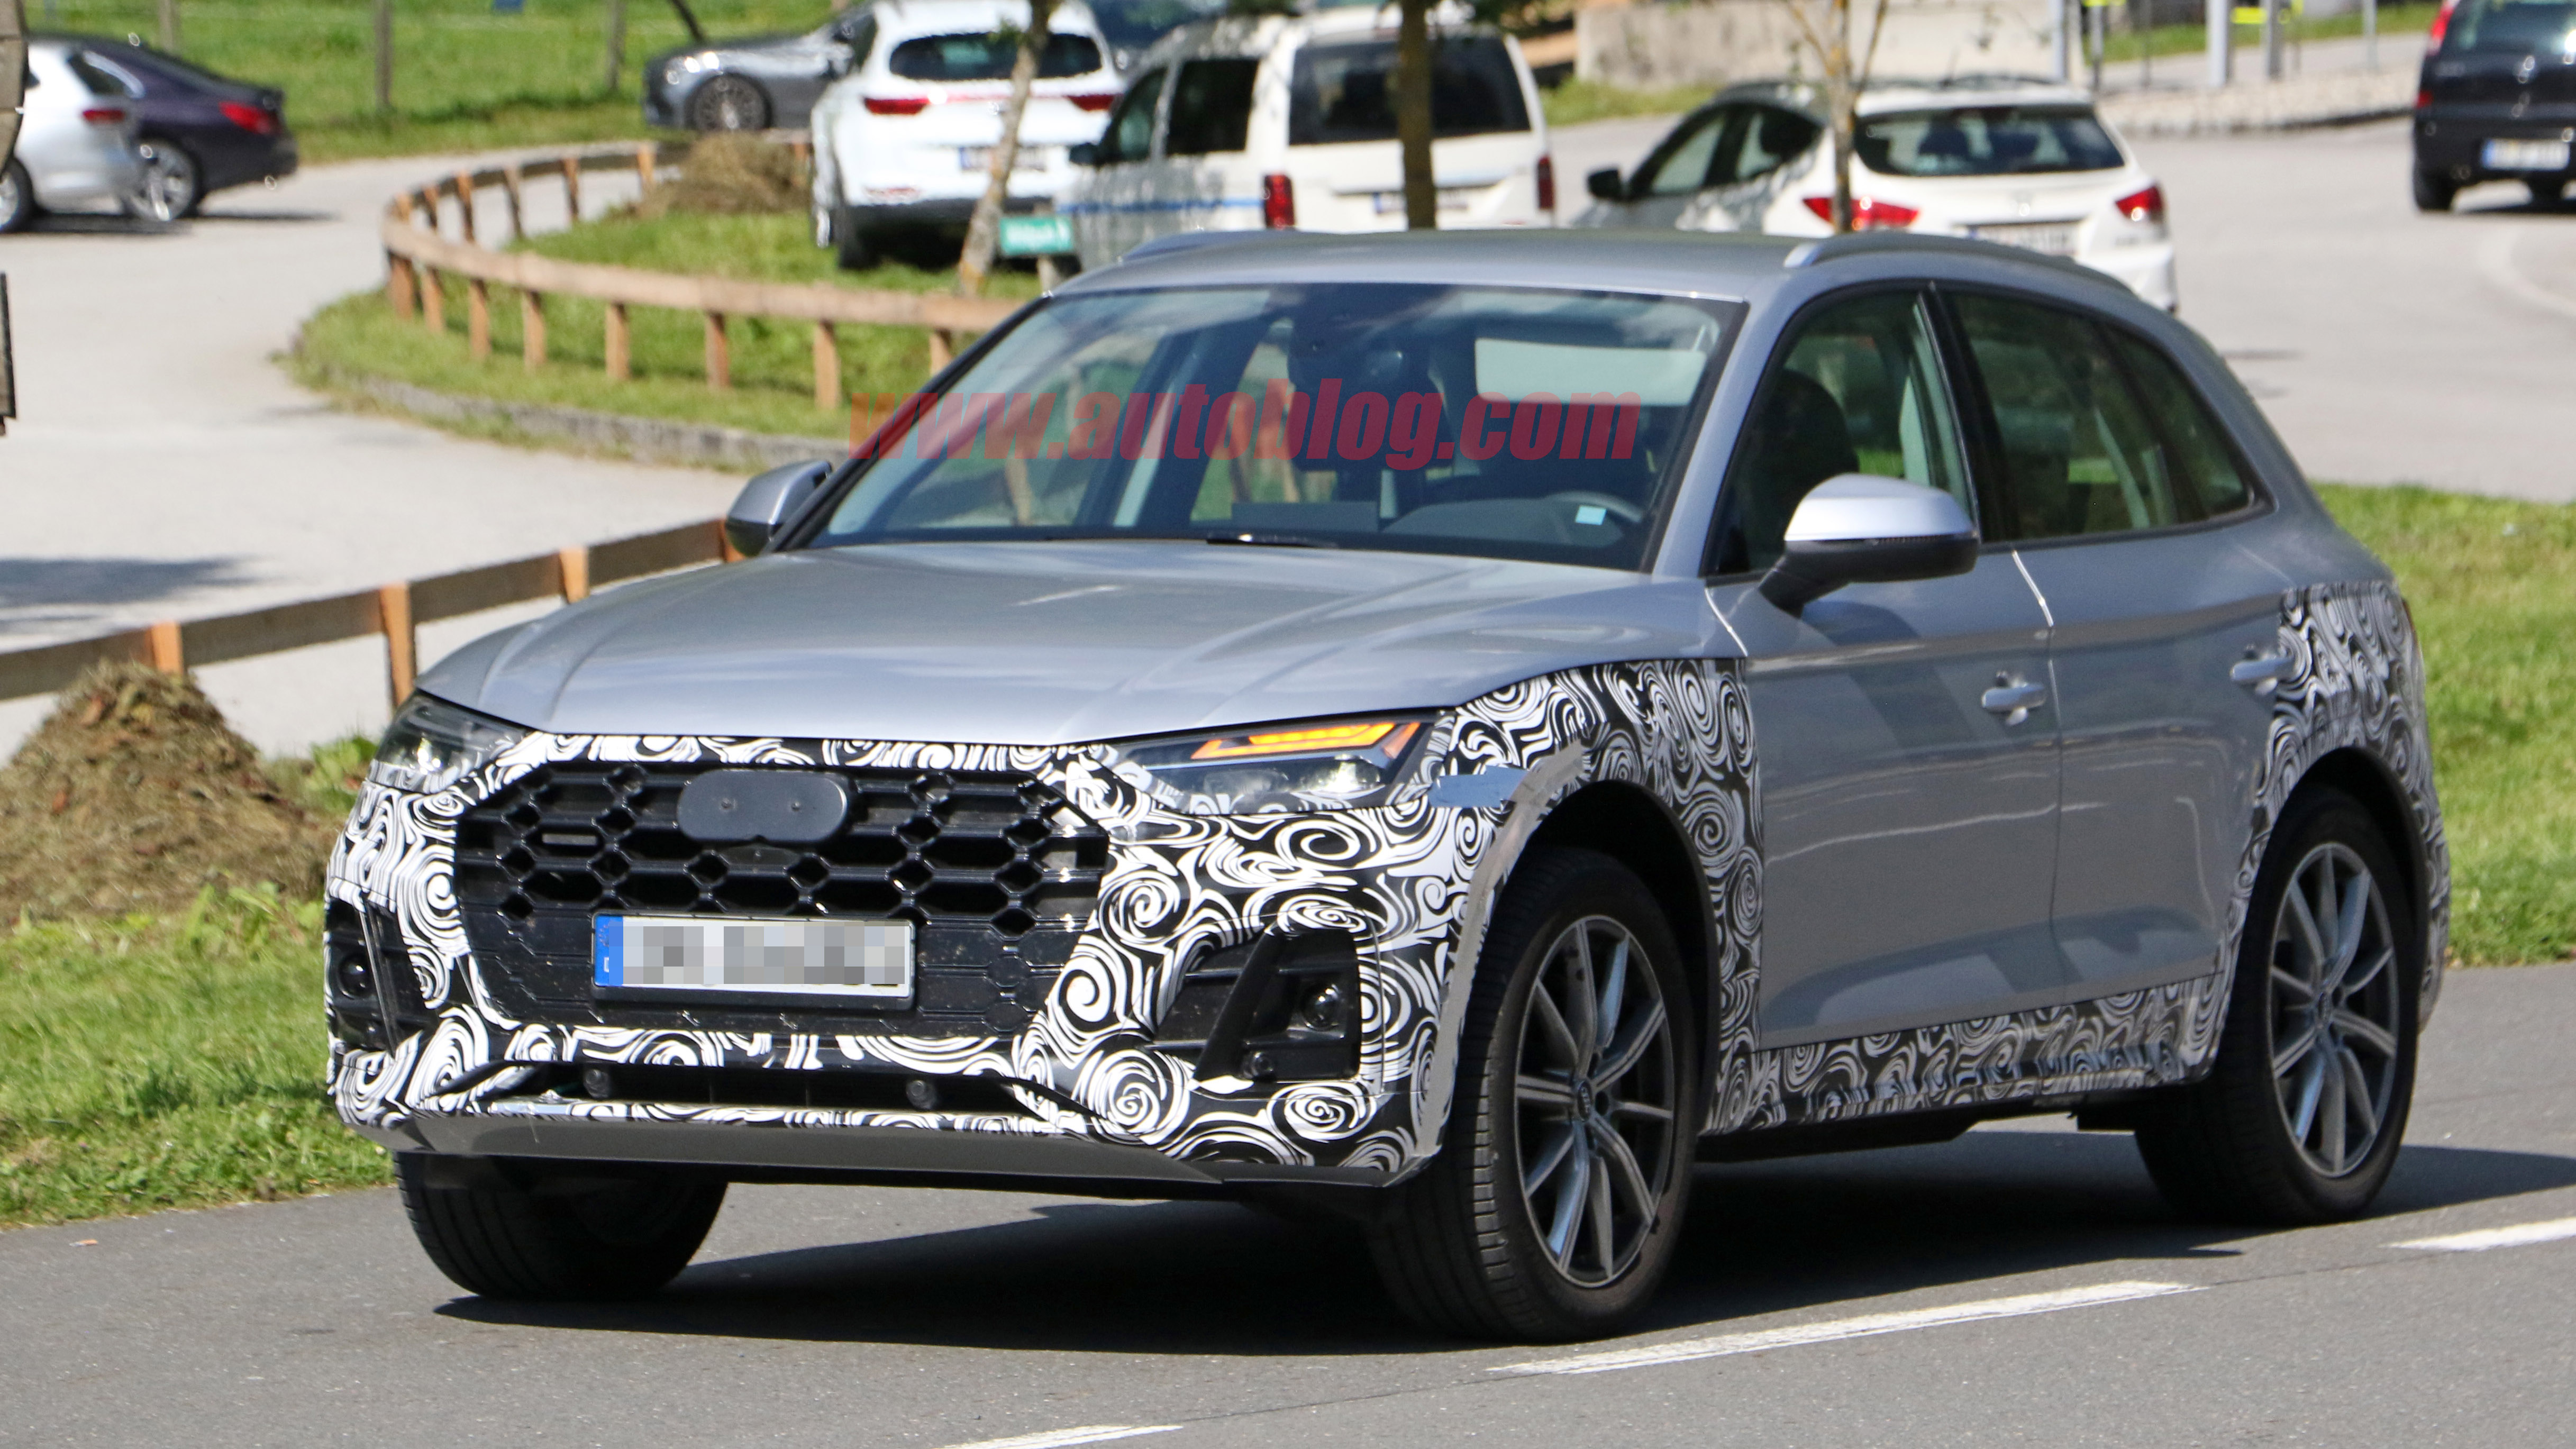 Pre Owned Audi >> 2021 Audi Q5 getting a refresh to match its siblings | Autoblog